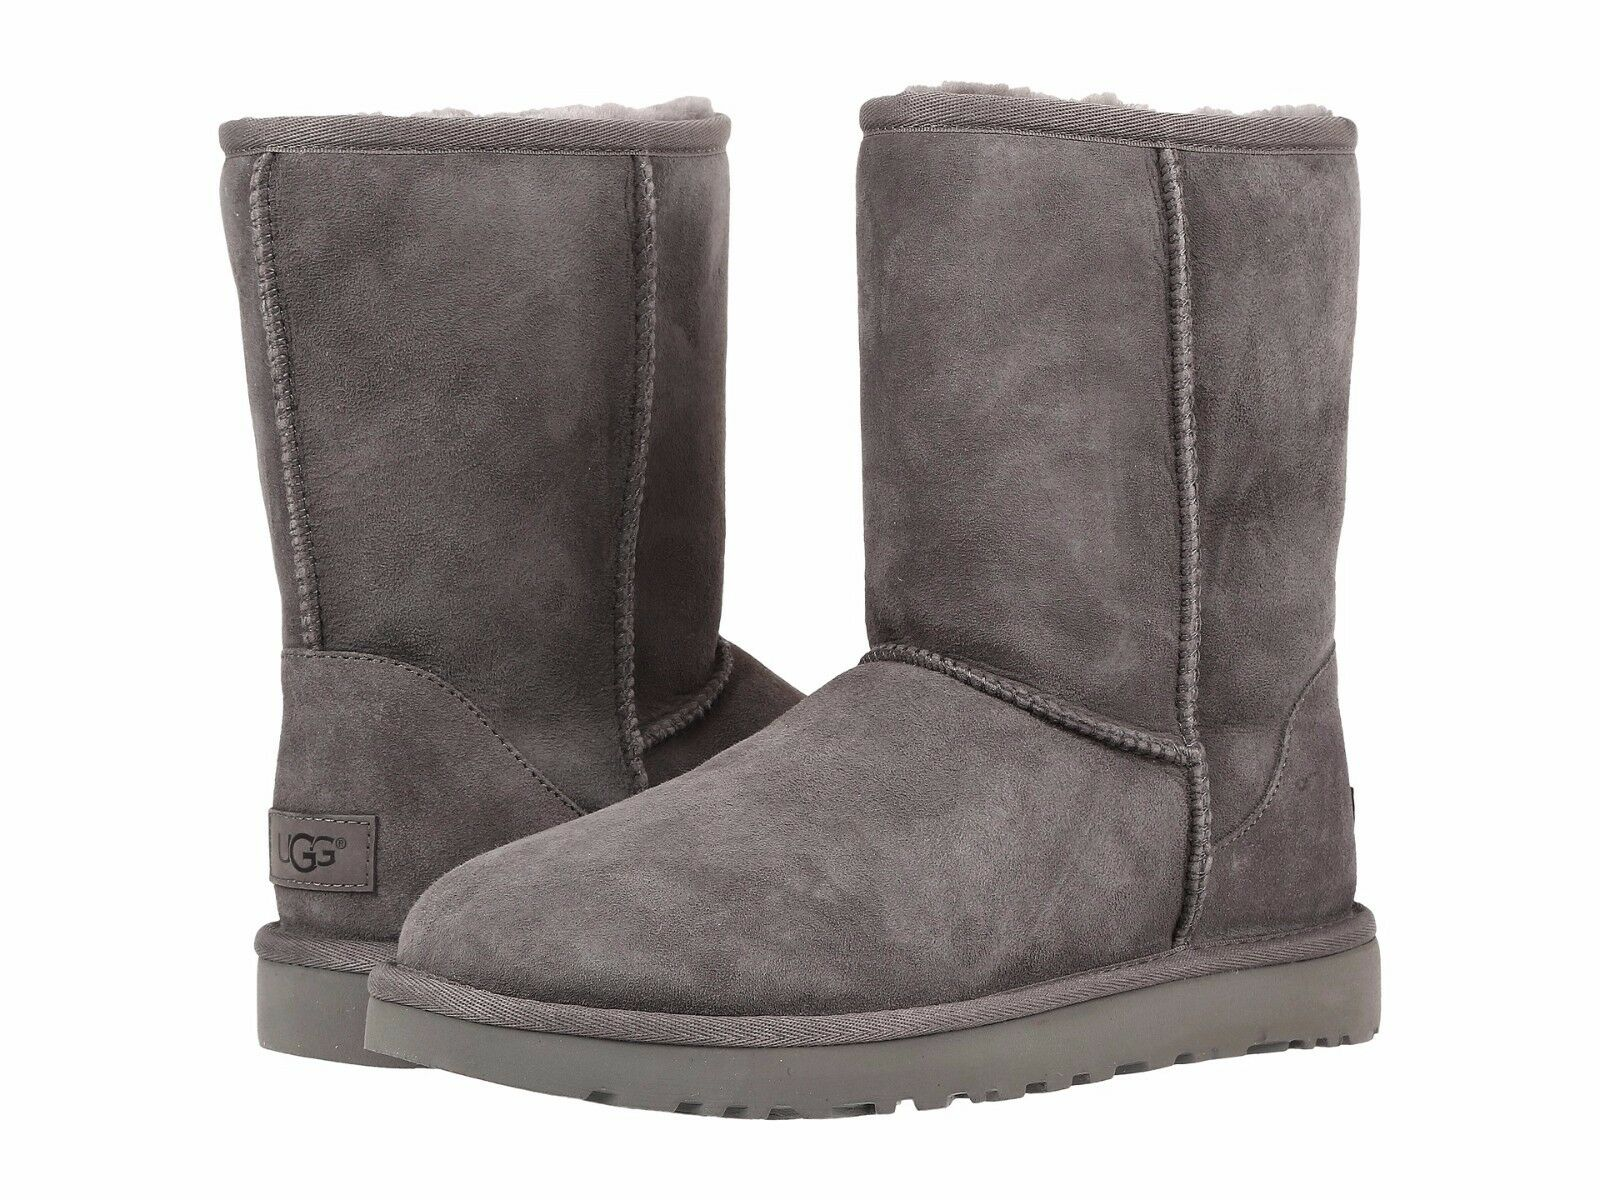 Women's Shoes UGG CLASSIC SHORT II Mid-Calf Boots 1016223 GR